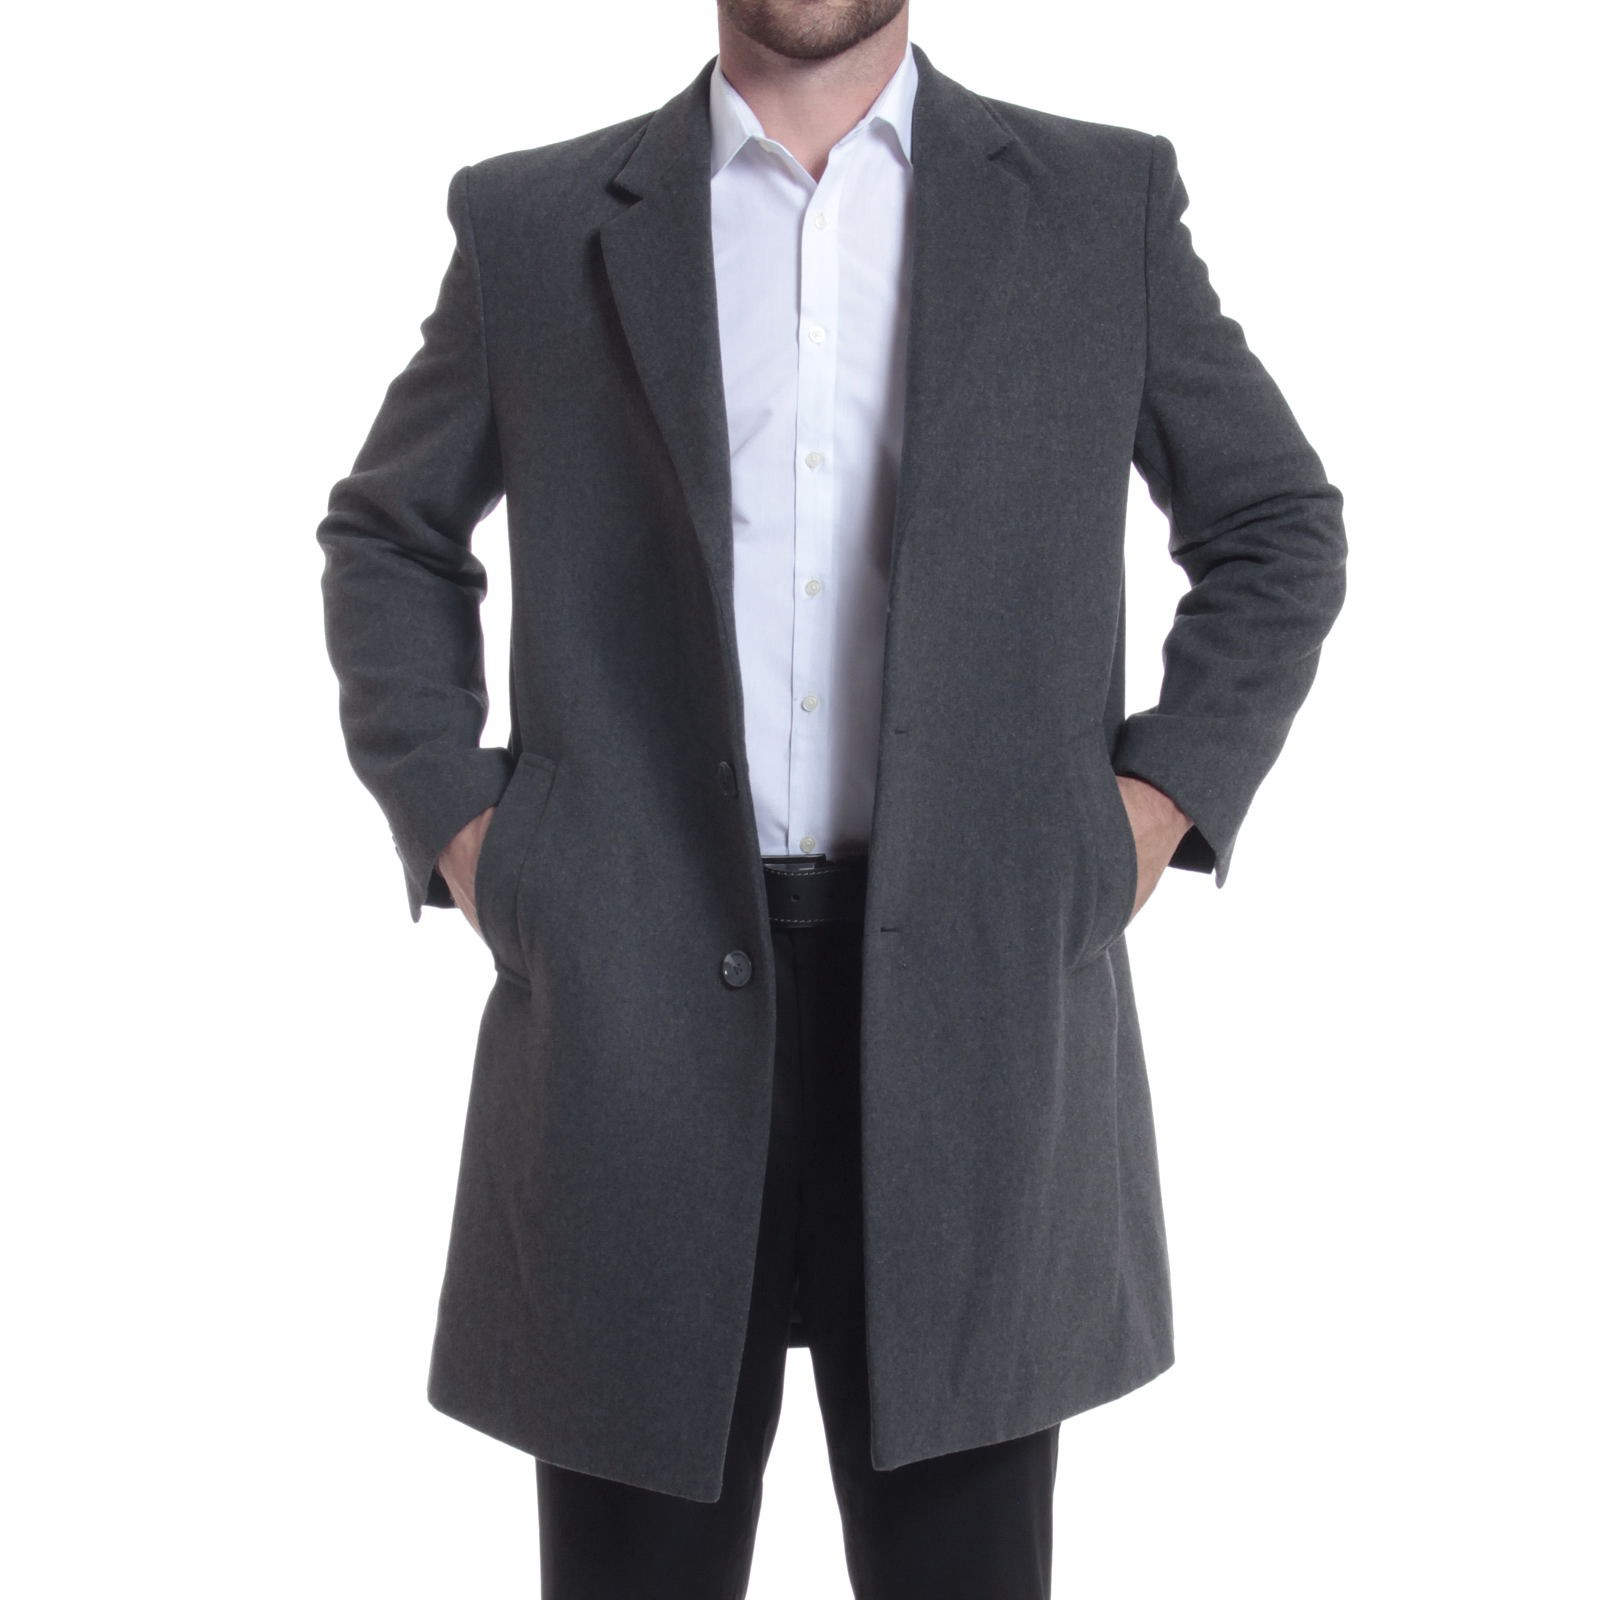 Find and save ideas about Mens top coat on Pinterest. | See more ideas about Top men's fashion for winter, Stylish mens coats and Mens winter overcoats.